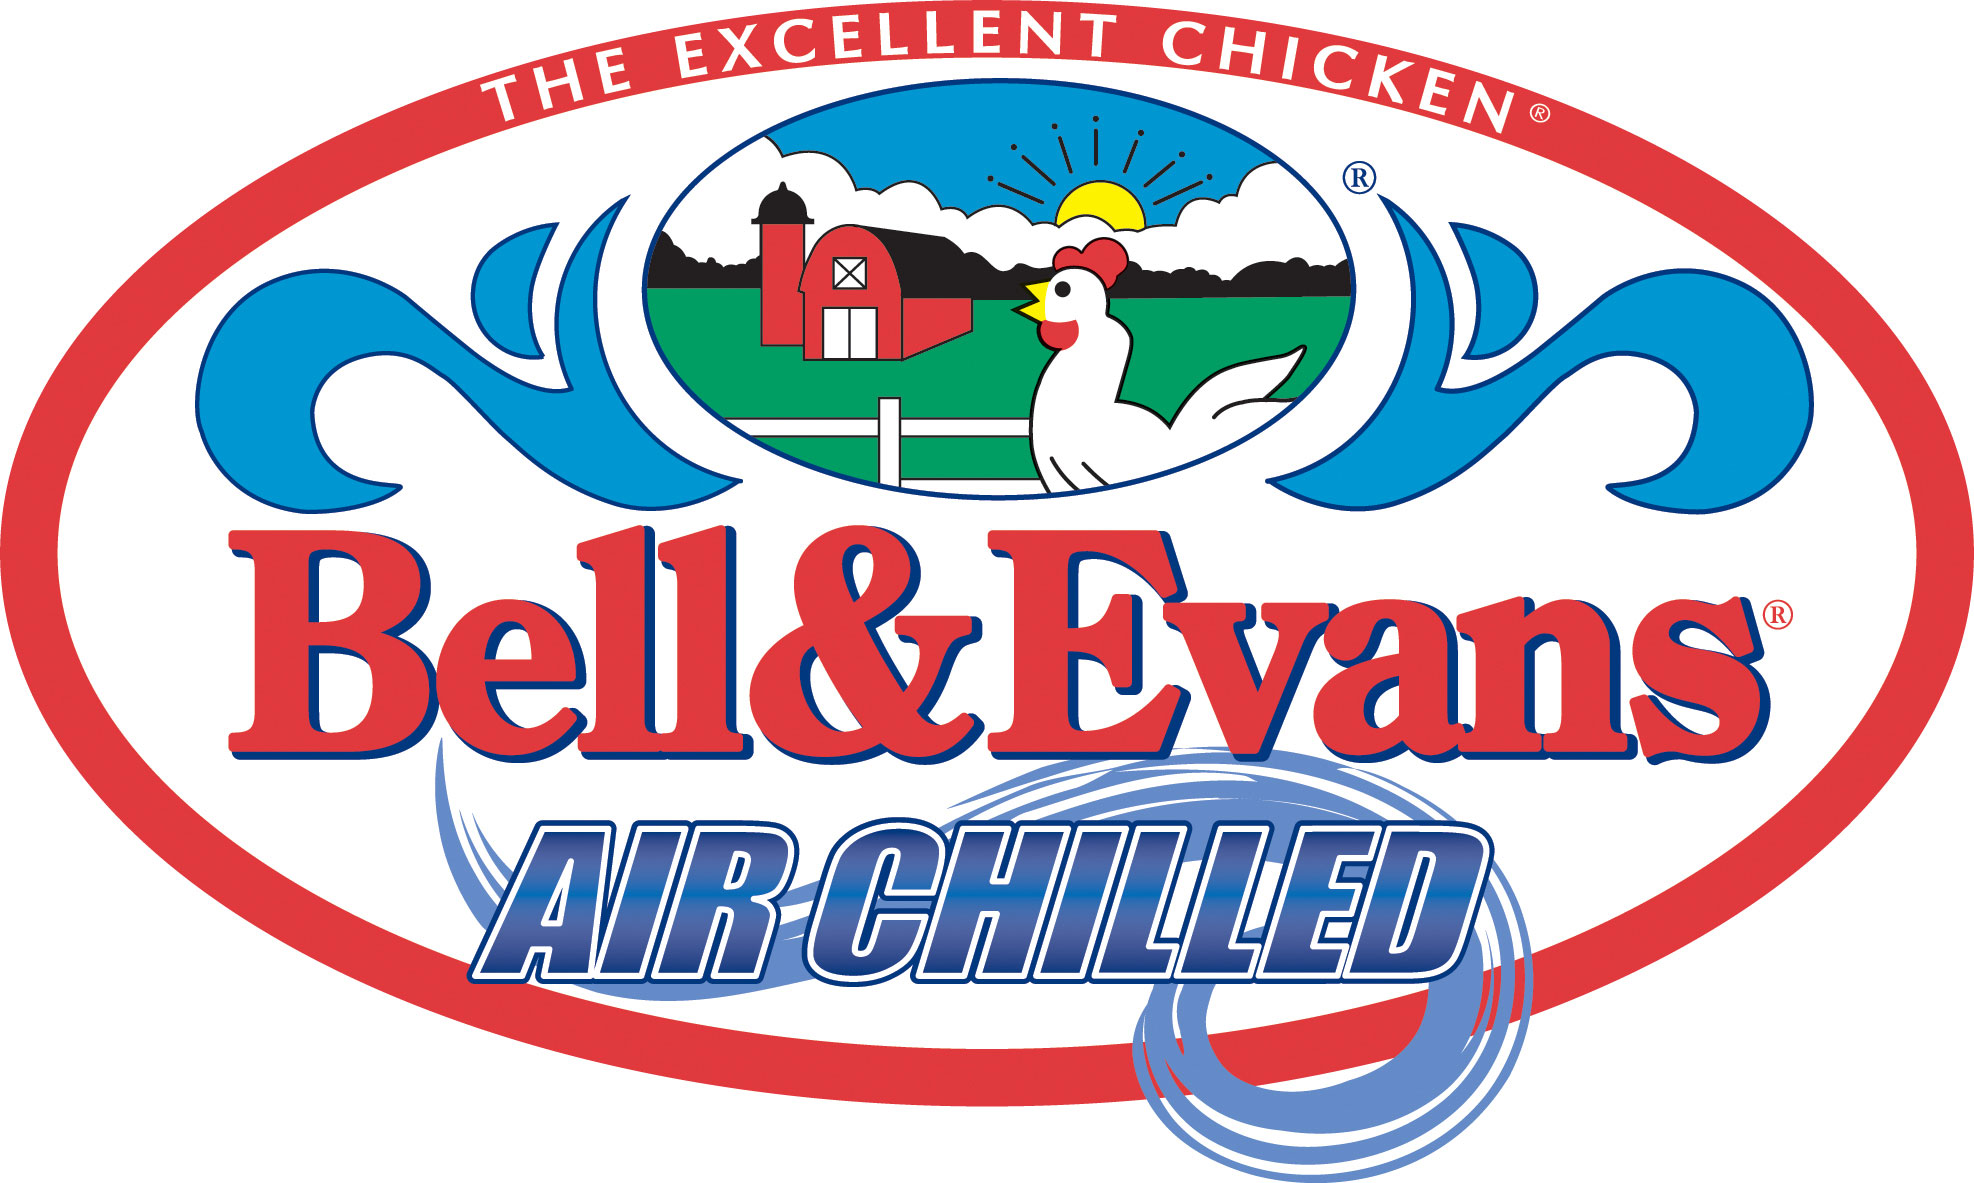 Bell & Evans: Improving farm animal welfare through innovative technology